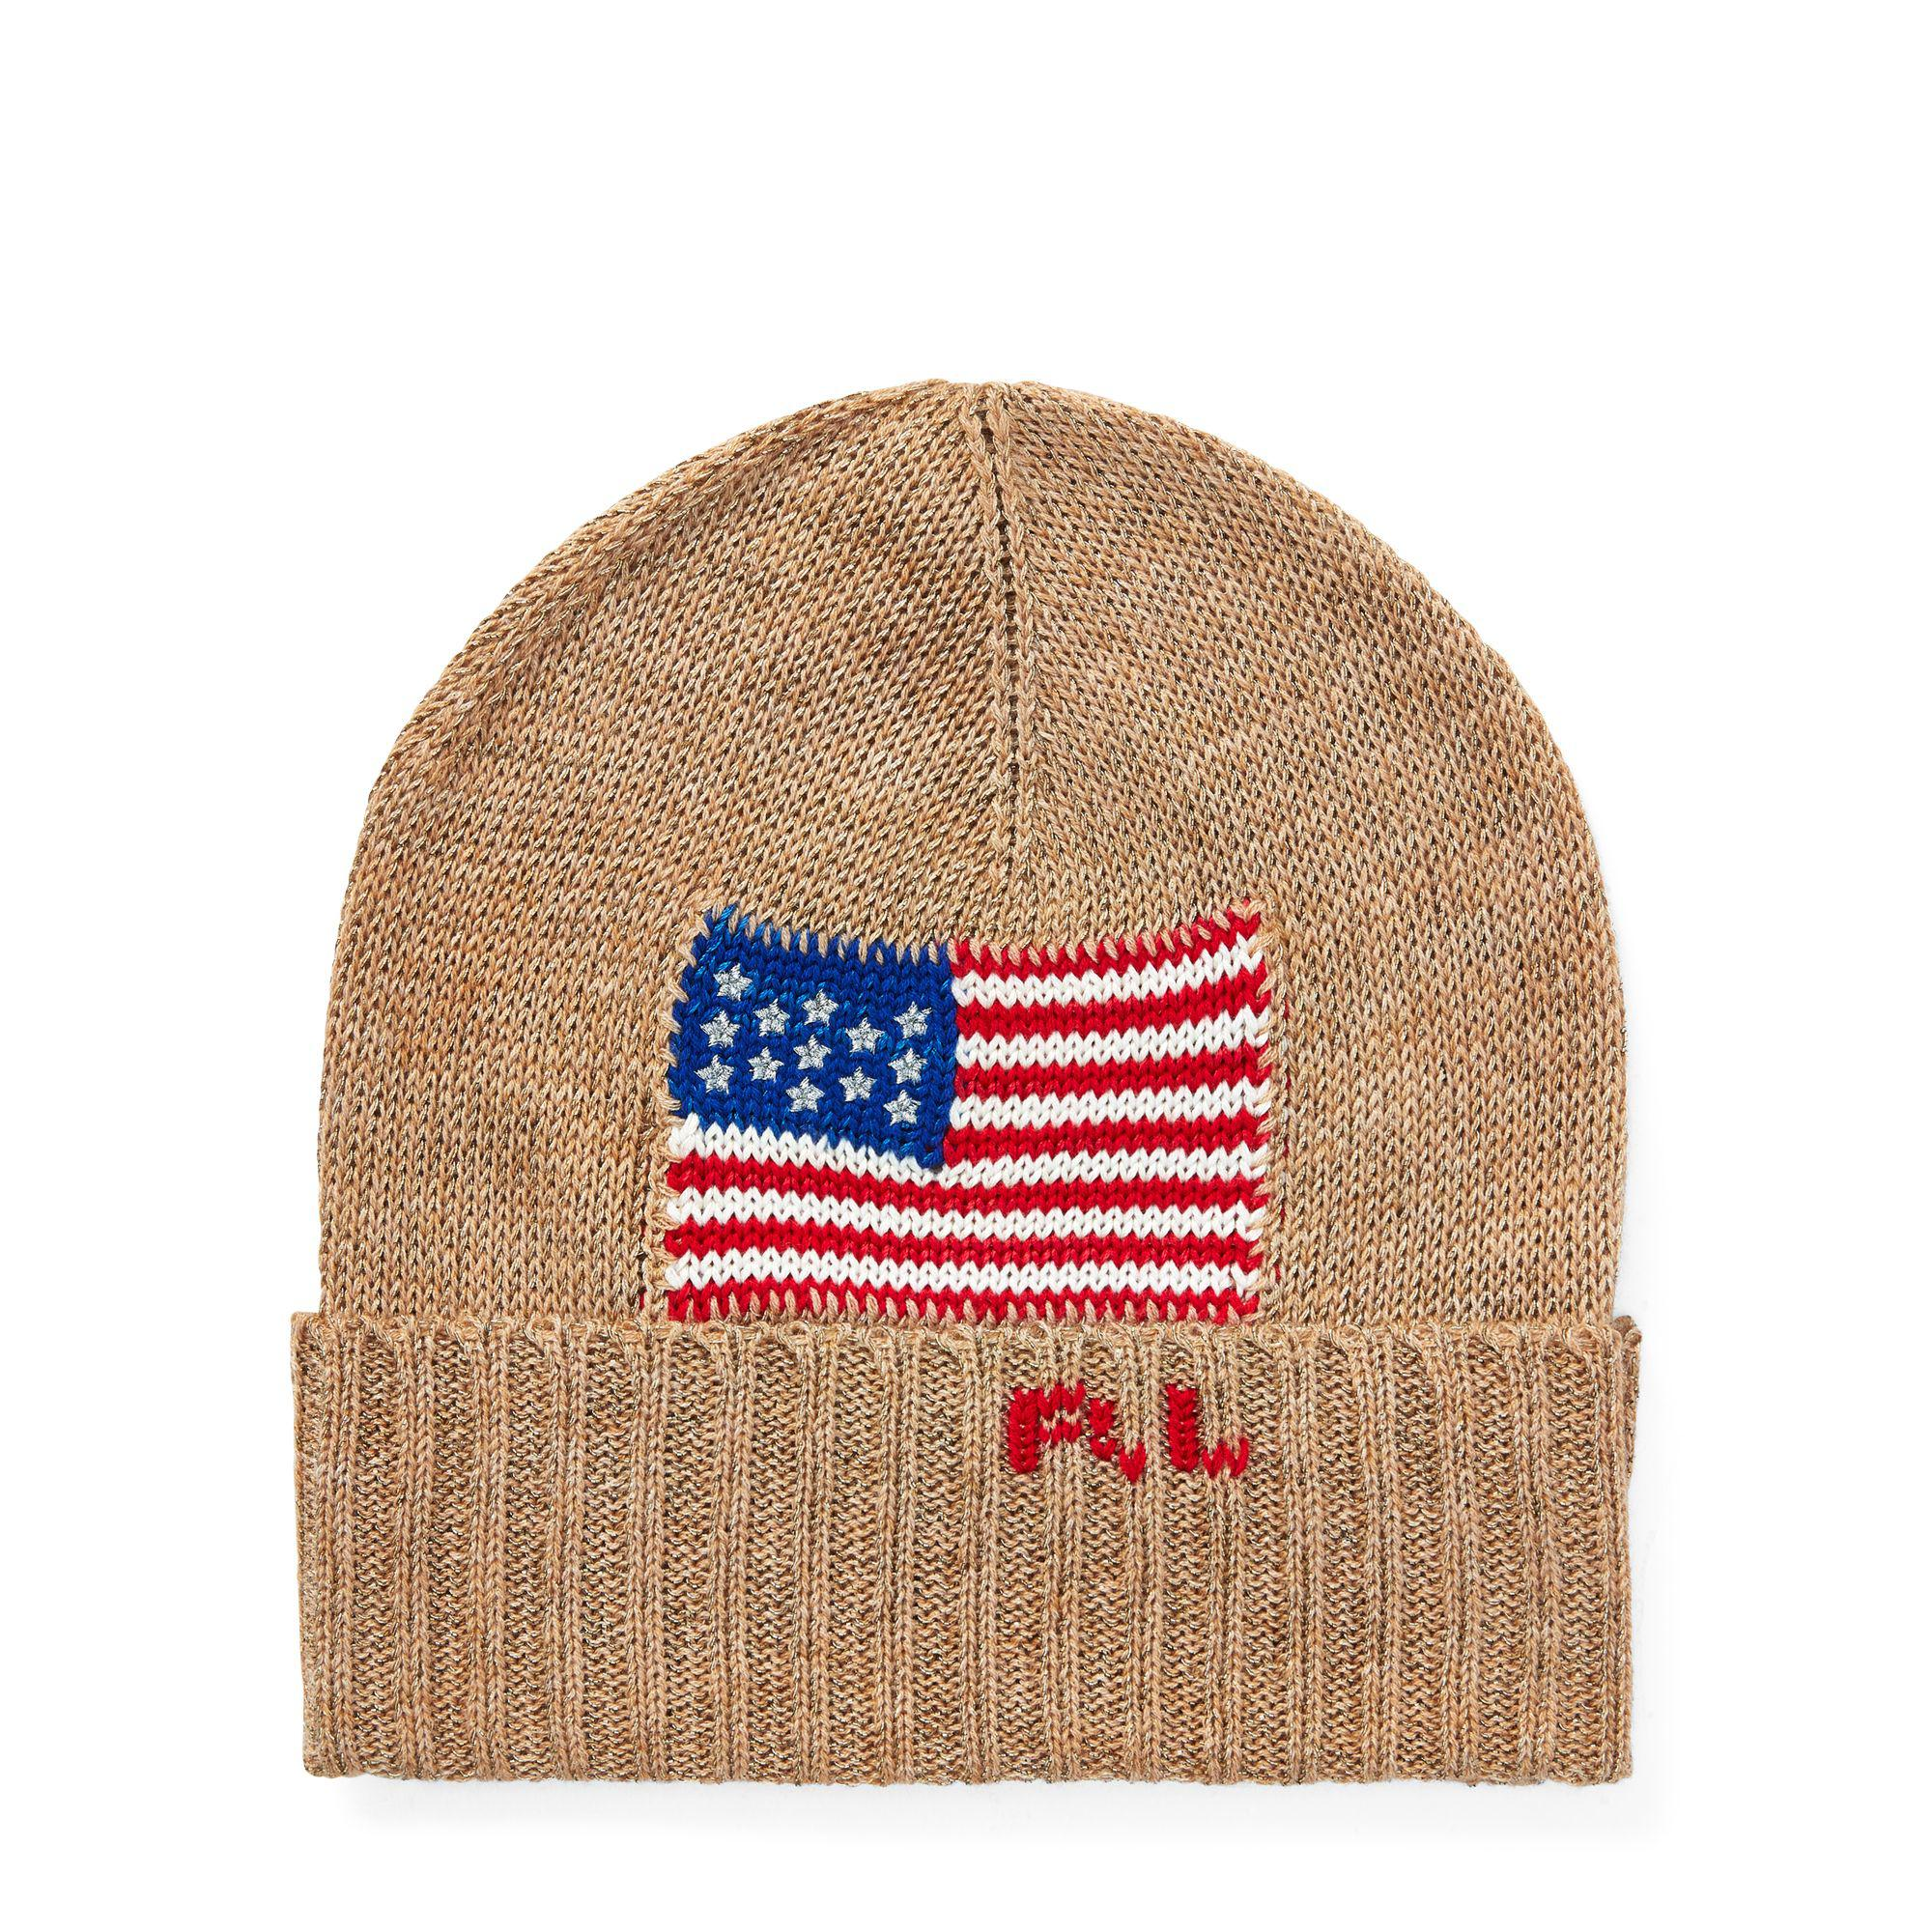 Lyst - Polo Ralph Lauren Metallic Flag Hat ea5b7d036f3c